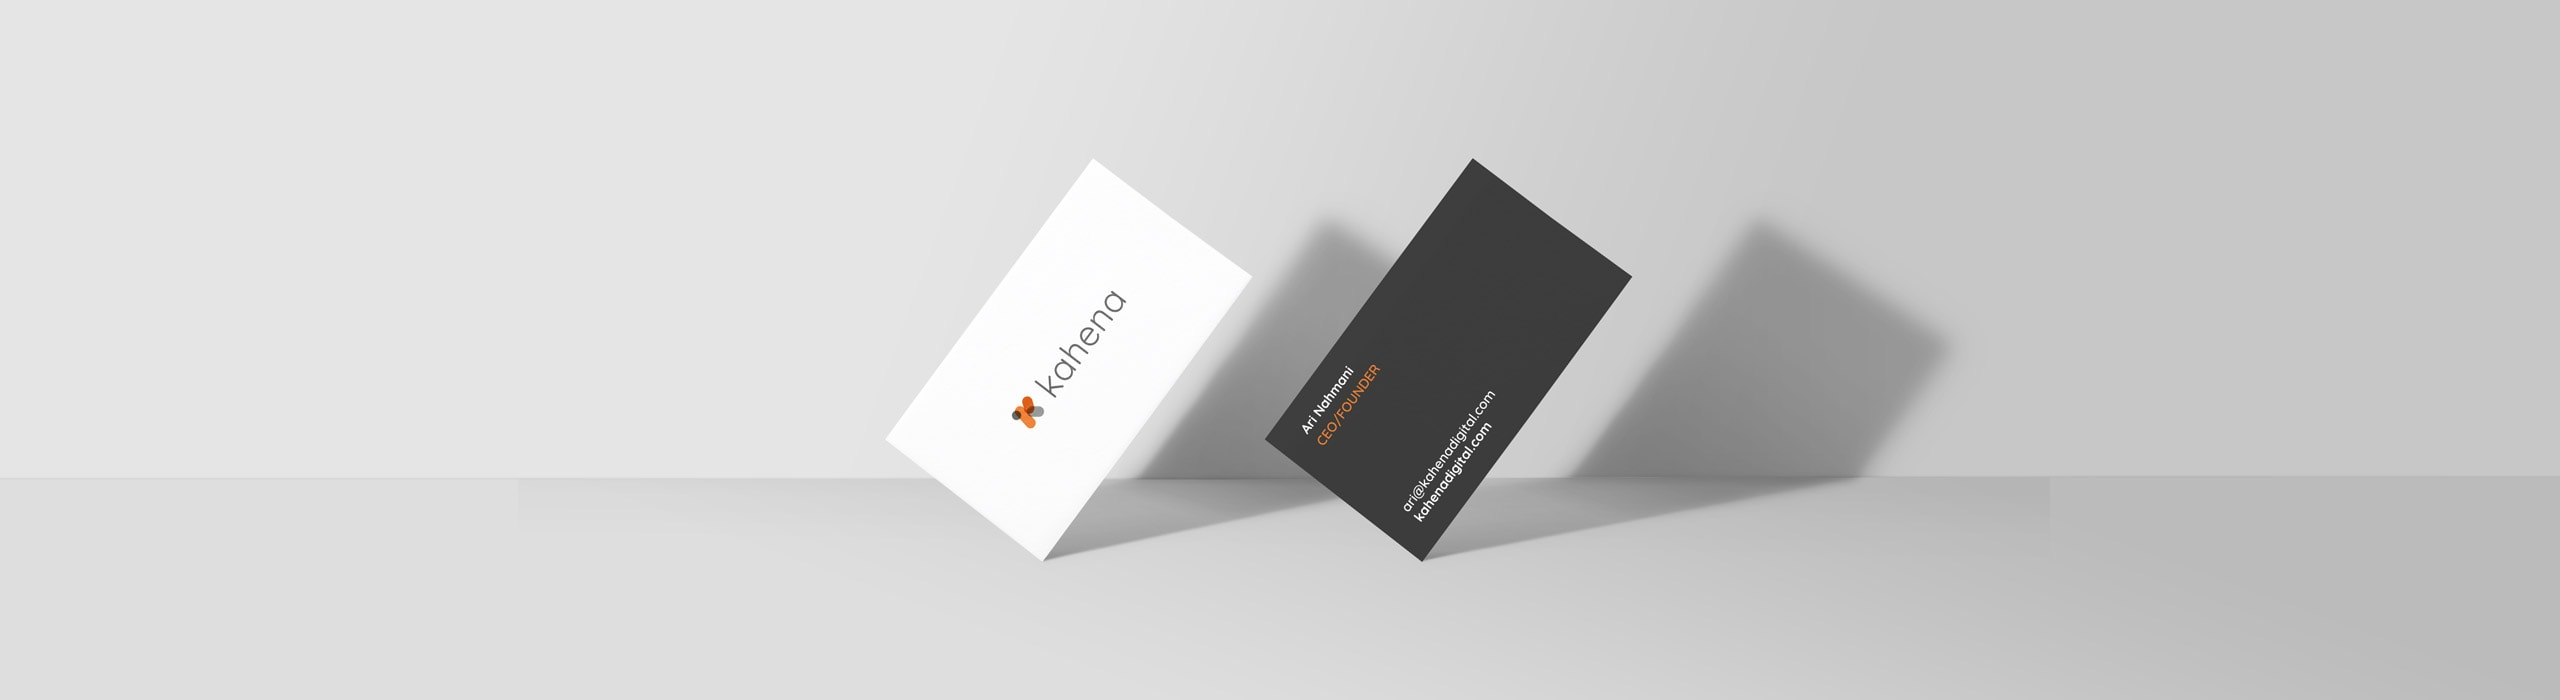 Kahena - natie-kahena-business-card - Natie Branding Agency